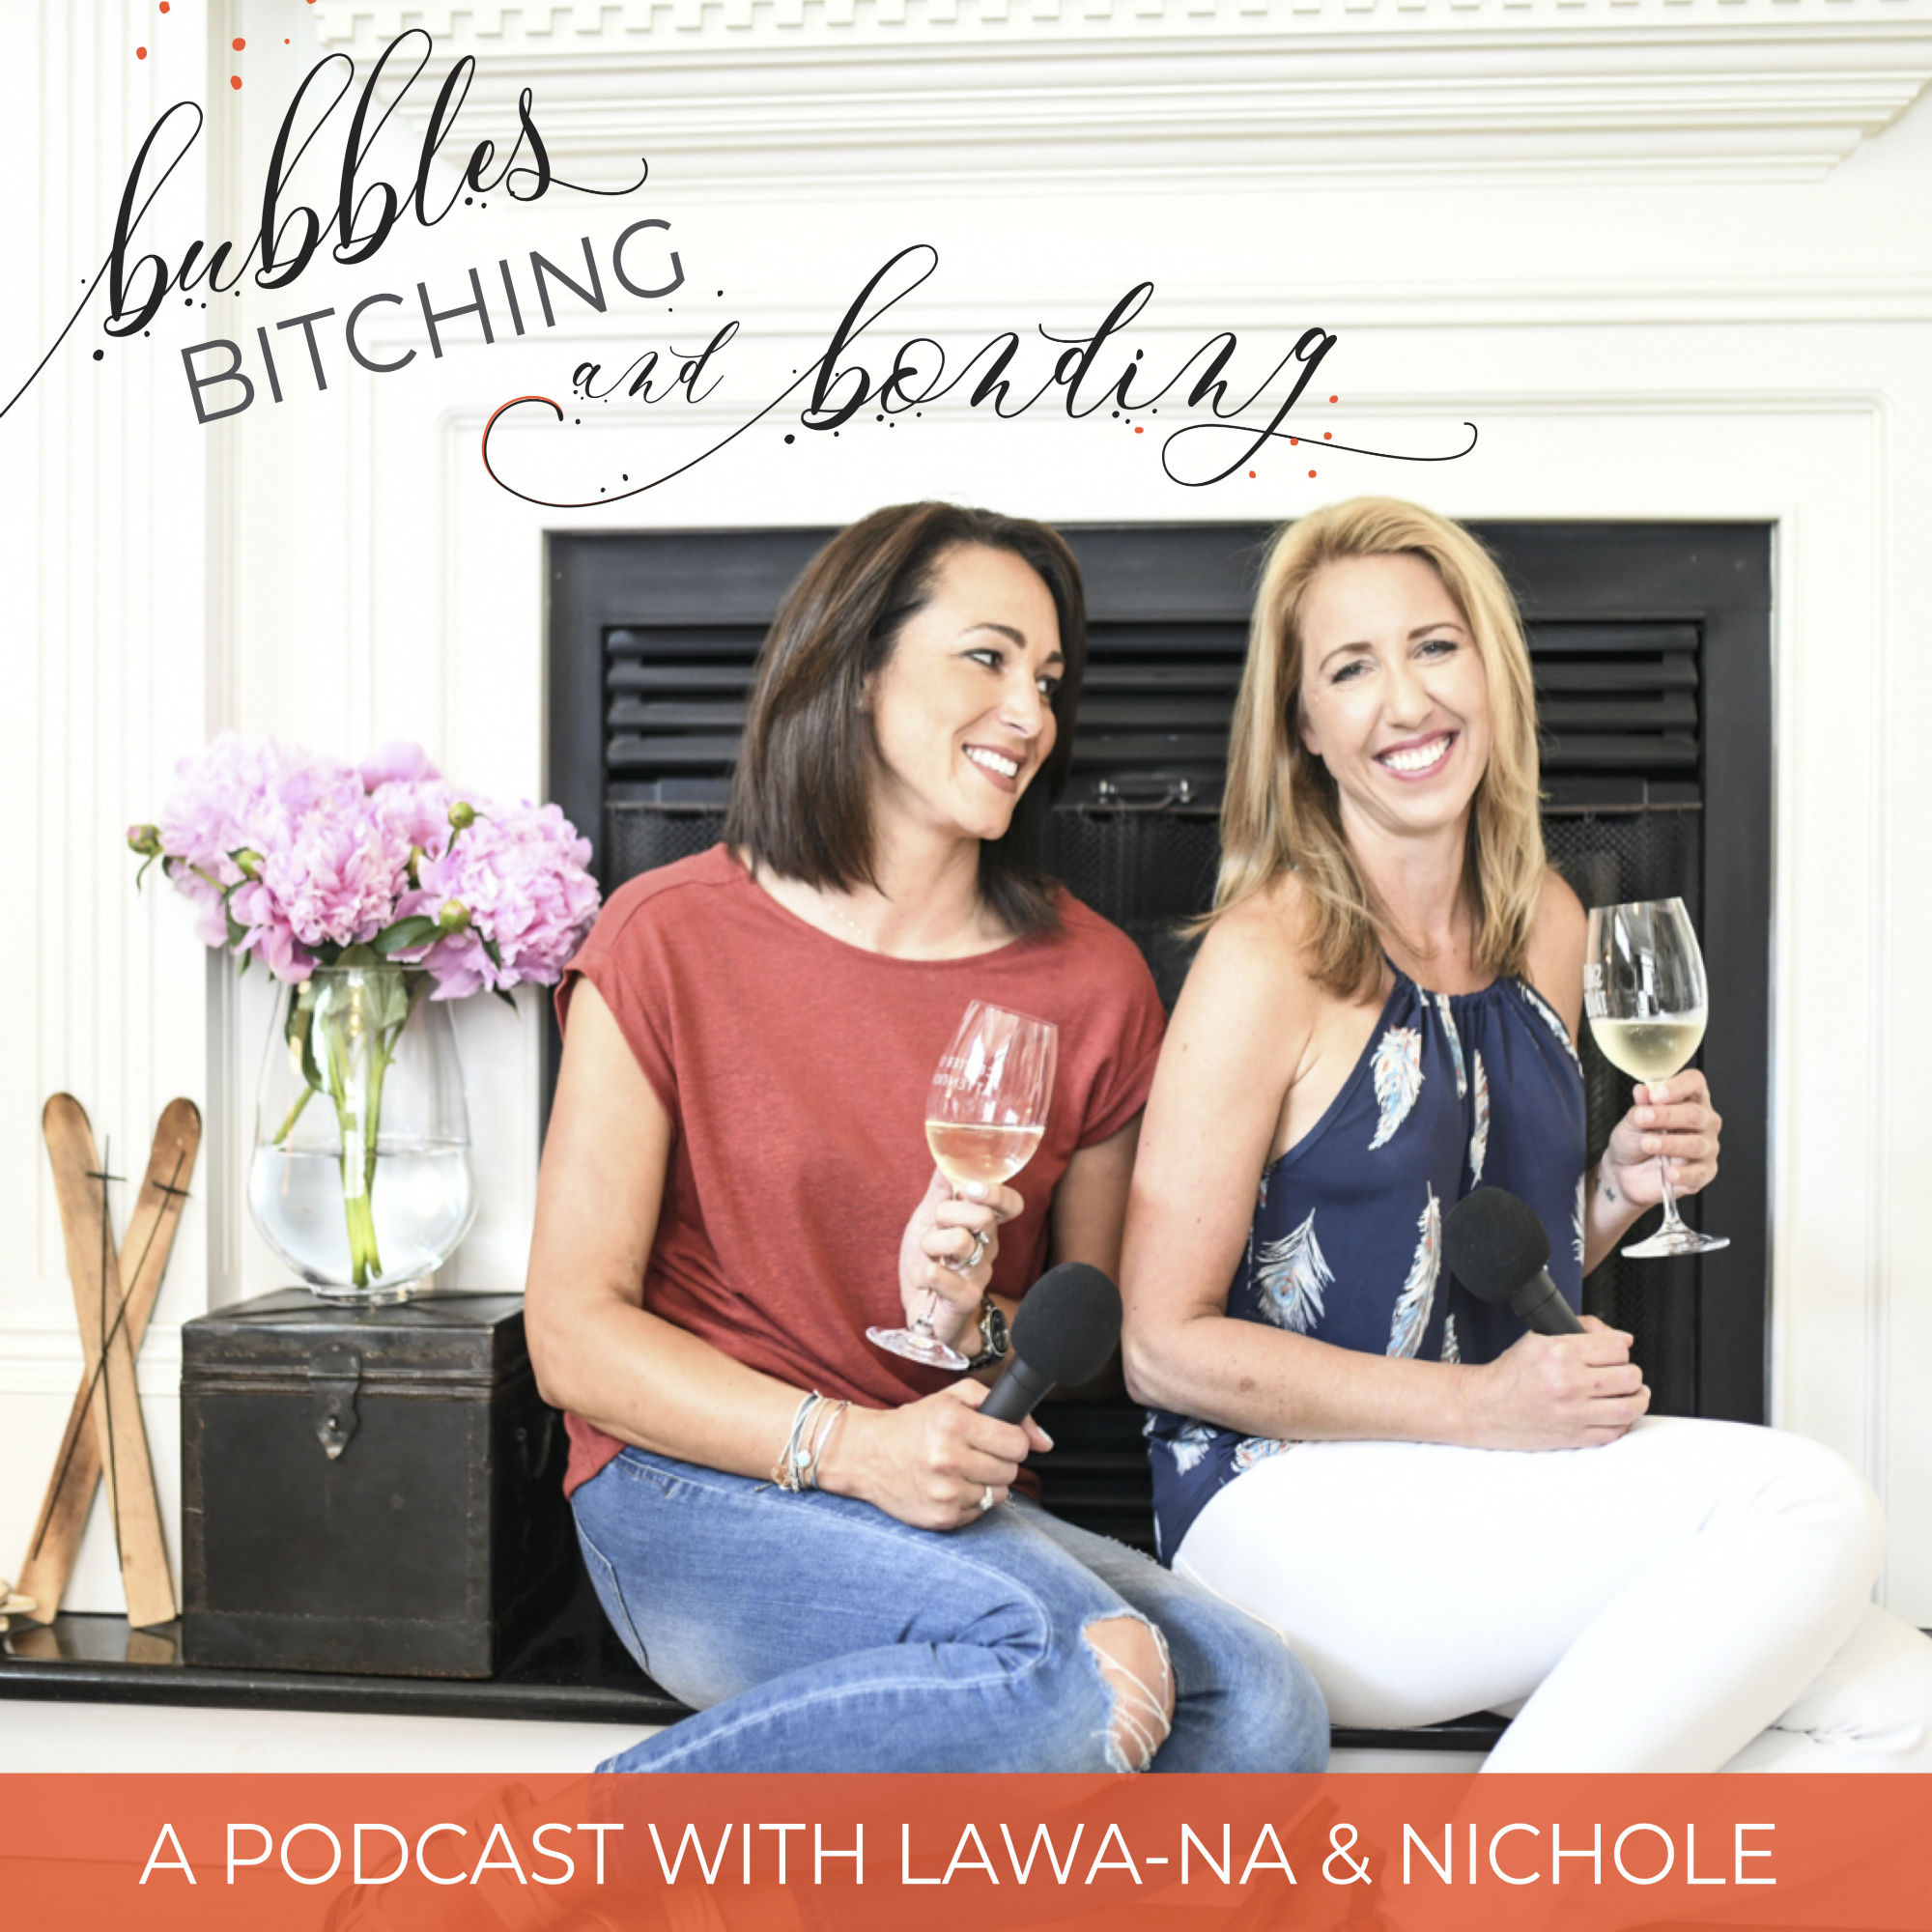 Bubbles, Bitching and Bonding Podcast